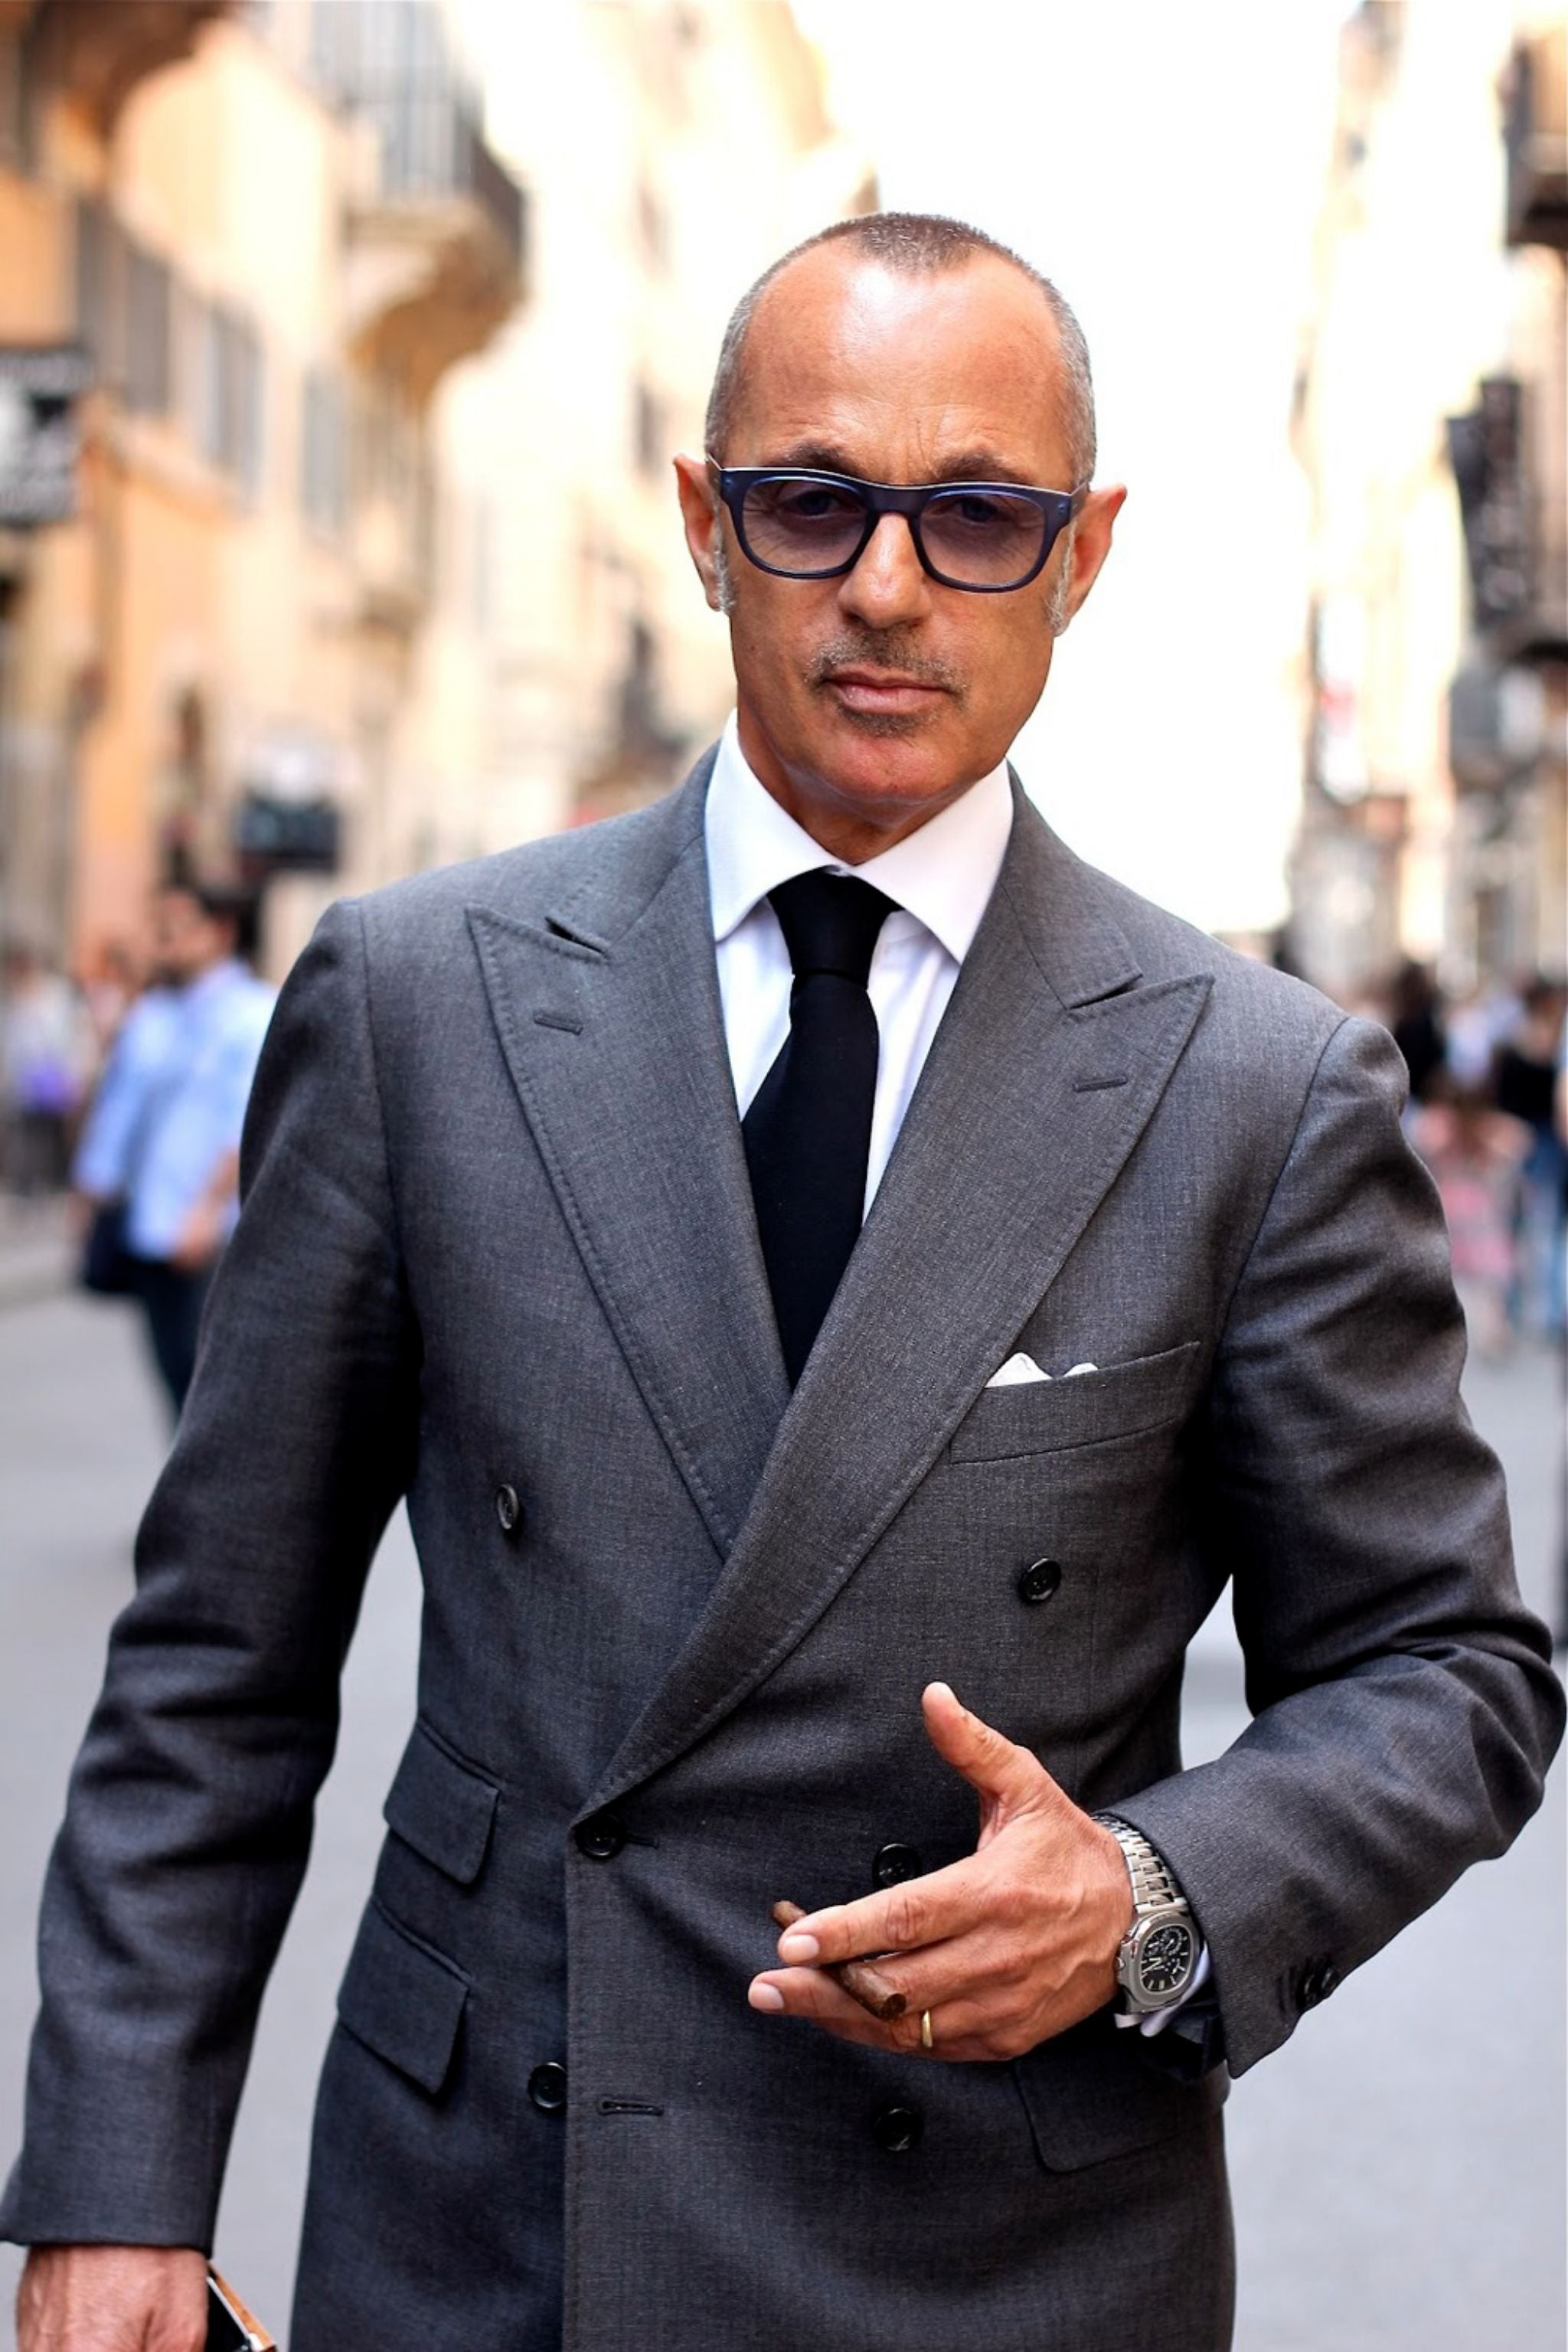 Gray double-breasted suit in Rome